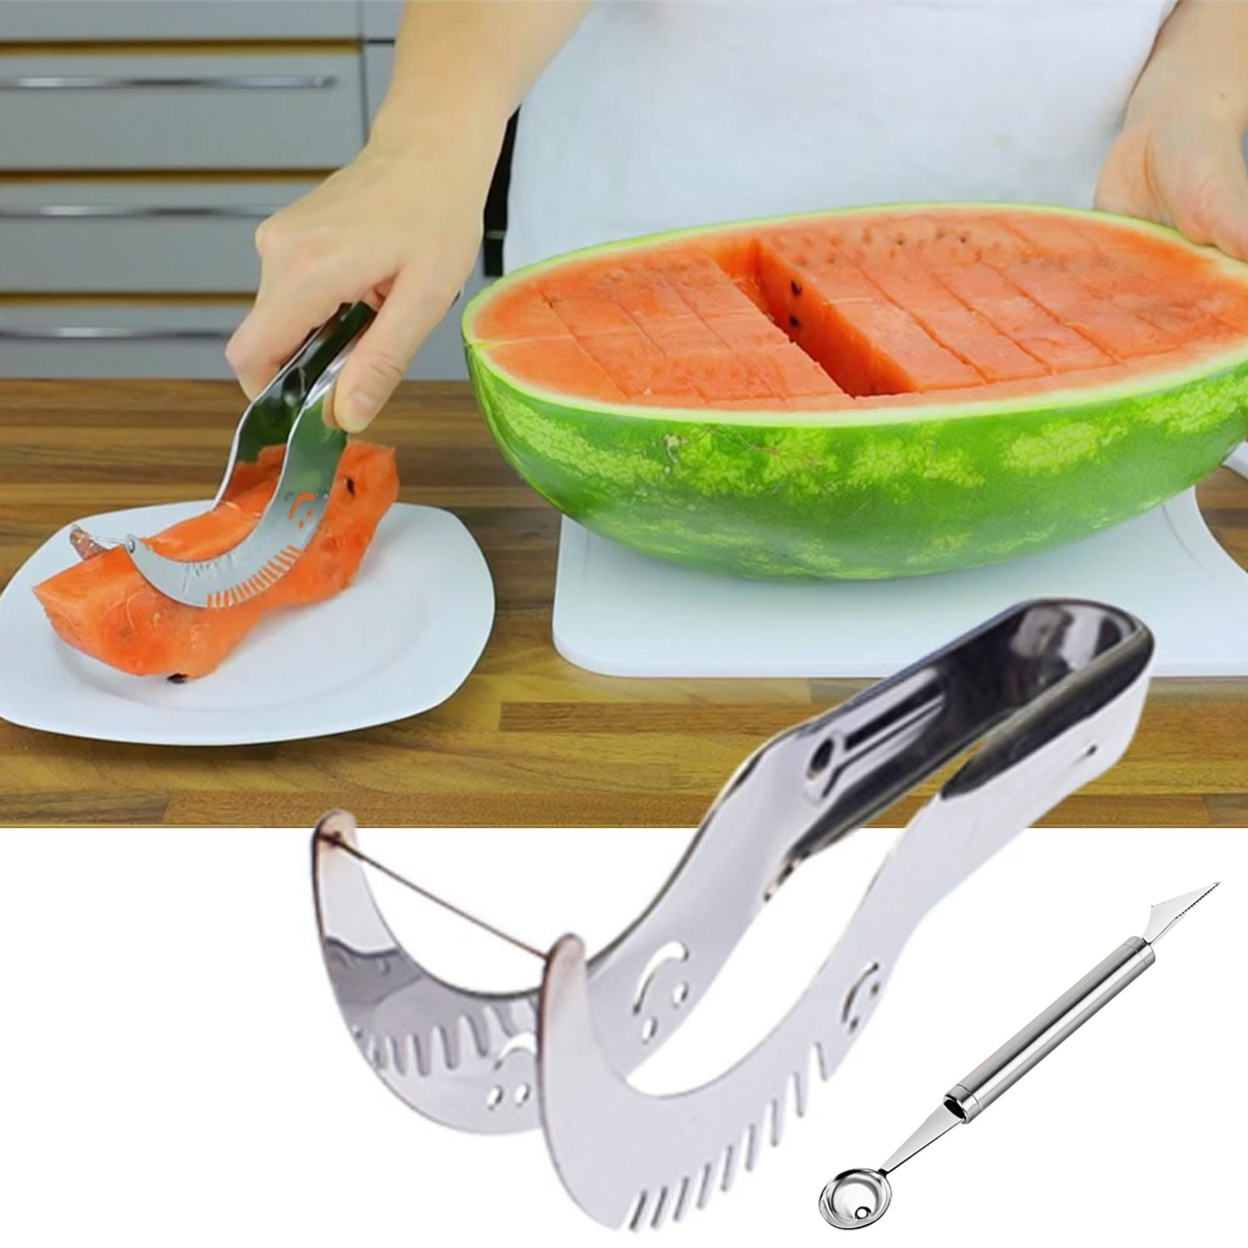 Wowzy 2 In 1 Deal Watermelon Slicer With Mellon Baller And Fruit Carver